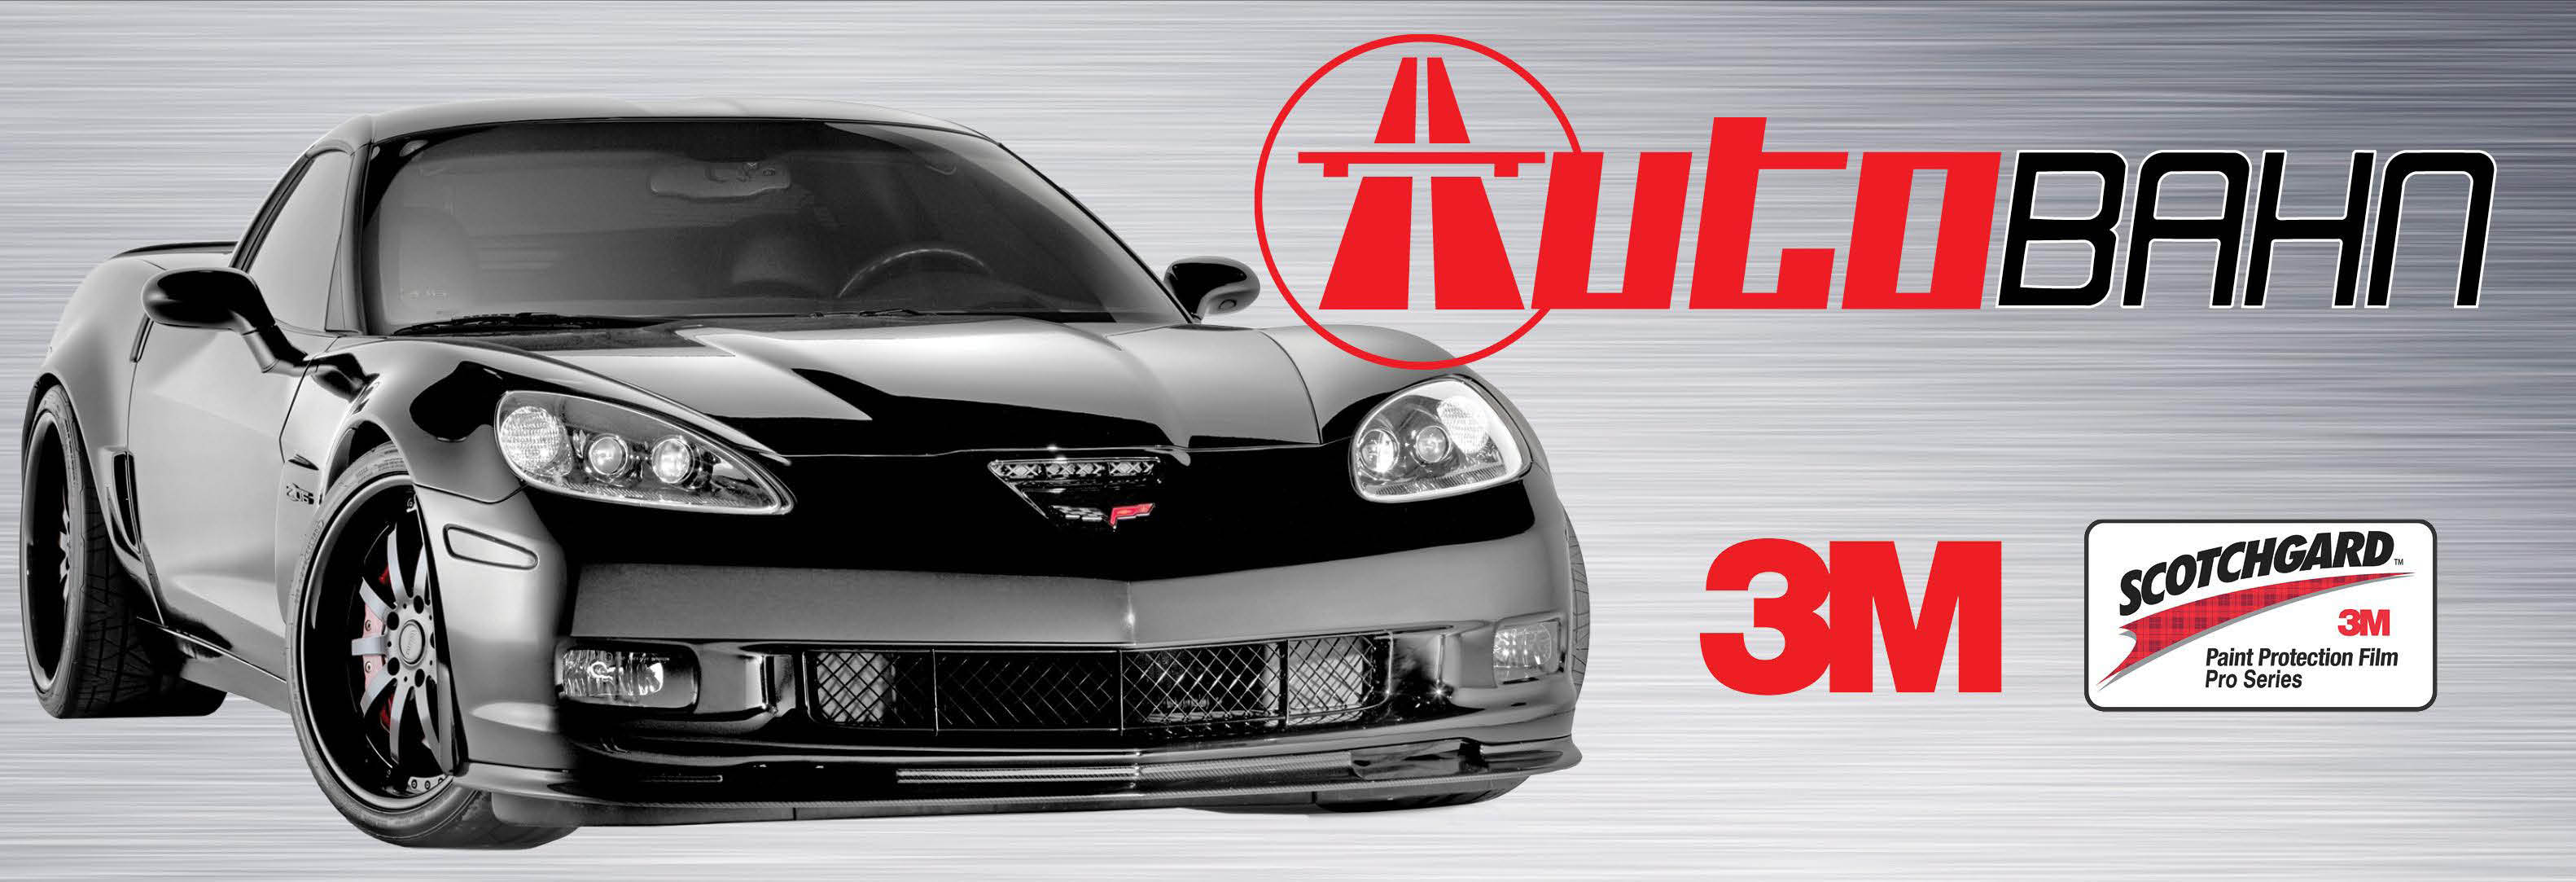 3m scratch protection film, 3m protective film, car paint protection, paint protection, clear bra